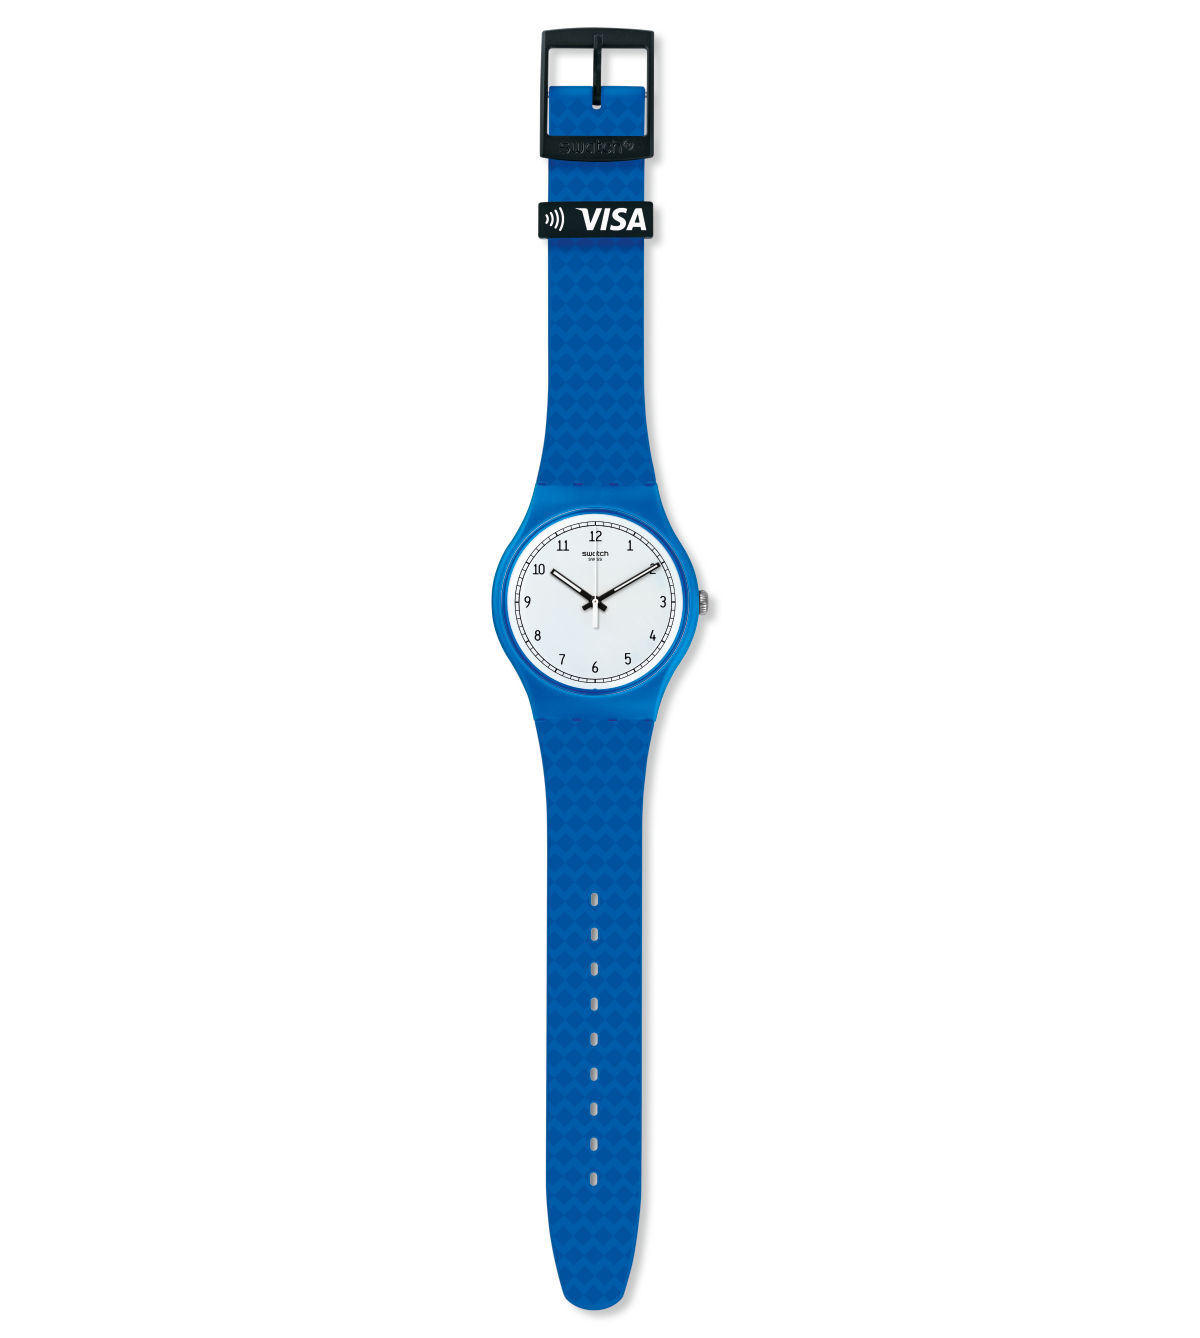 SWATCH BELLAMY SKY BLUE - SVIS100-5000